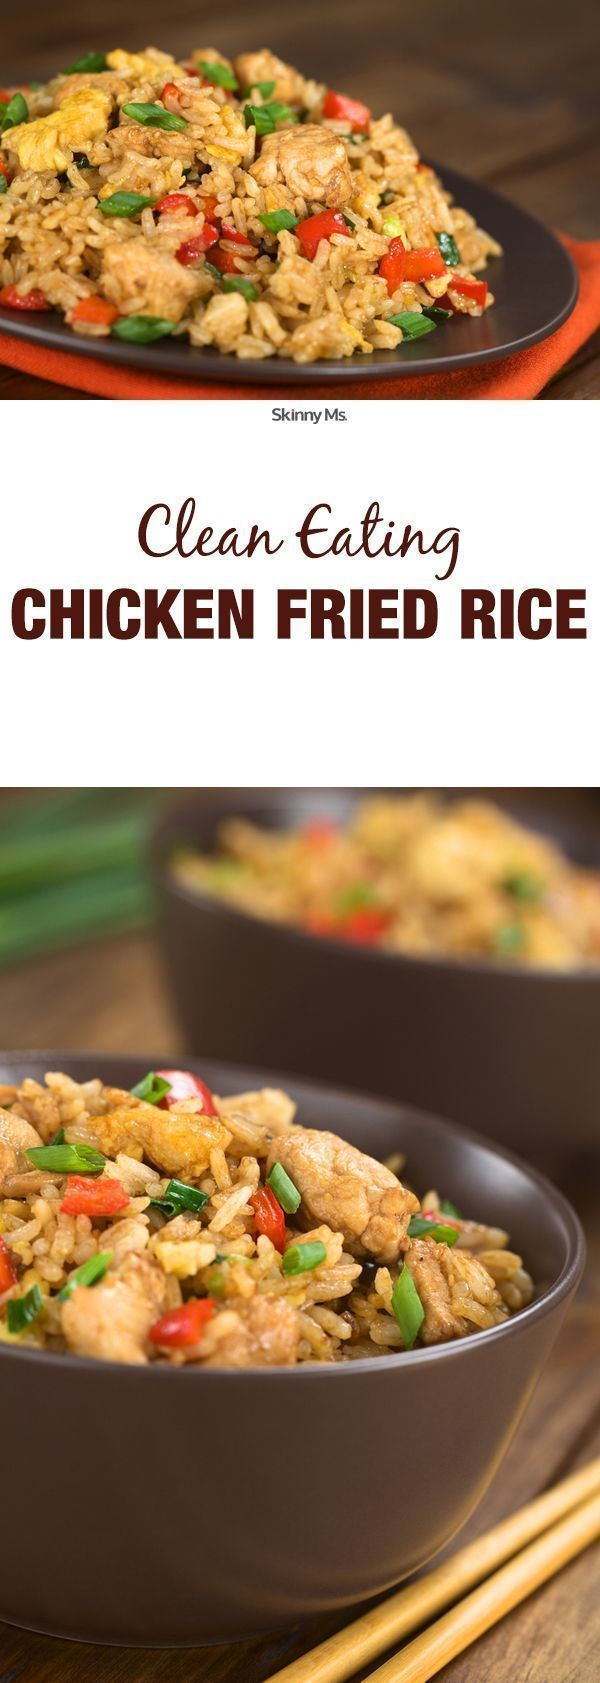 Clean Eating Chicken Fried Rice saves you all the calories from take out. (Apple Recipes Clean Eating)